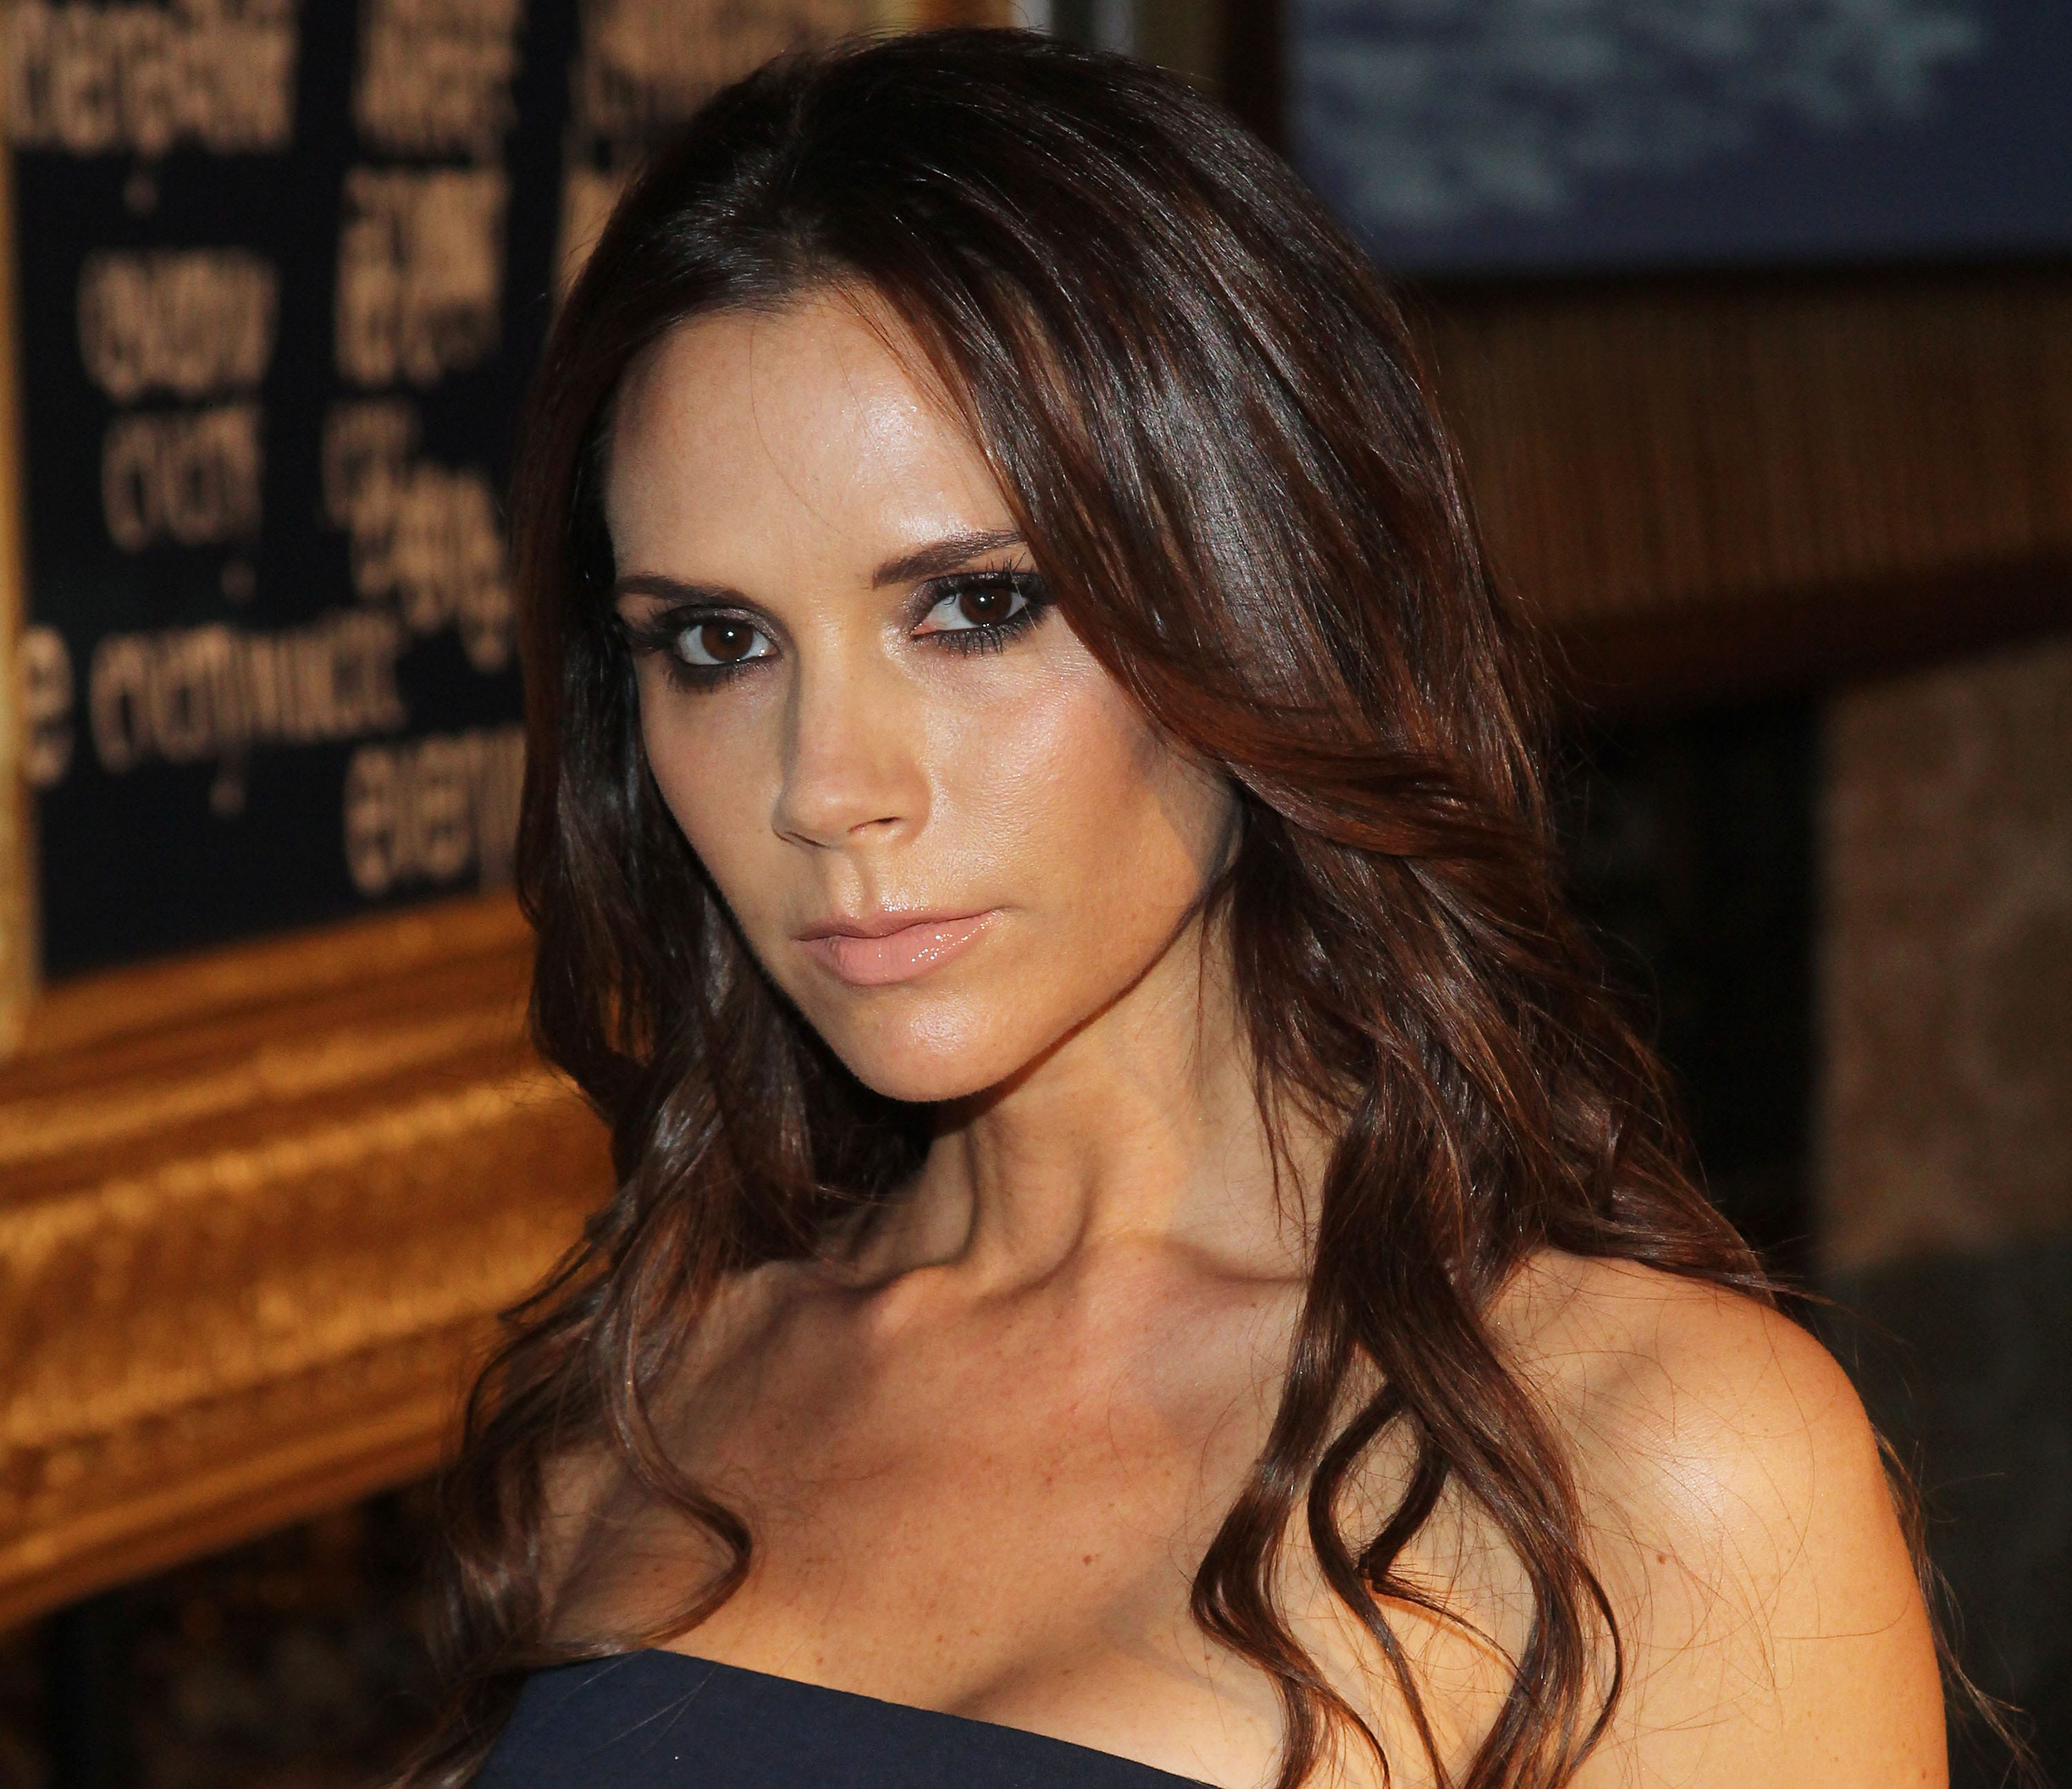 Victoria Beckham Desktop wallpapers